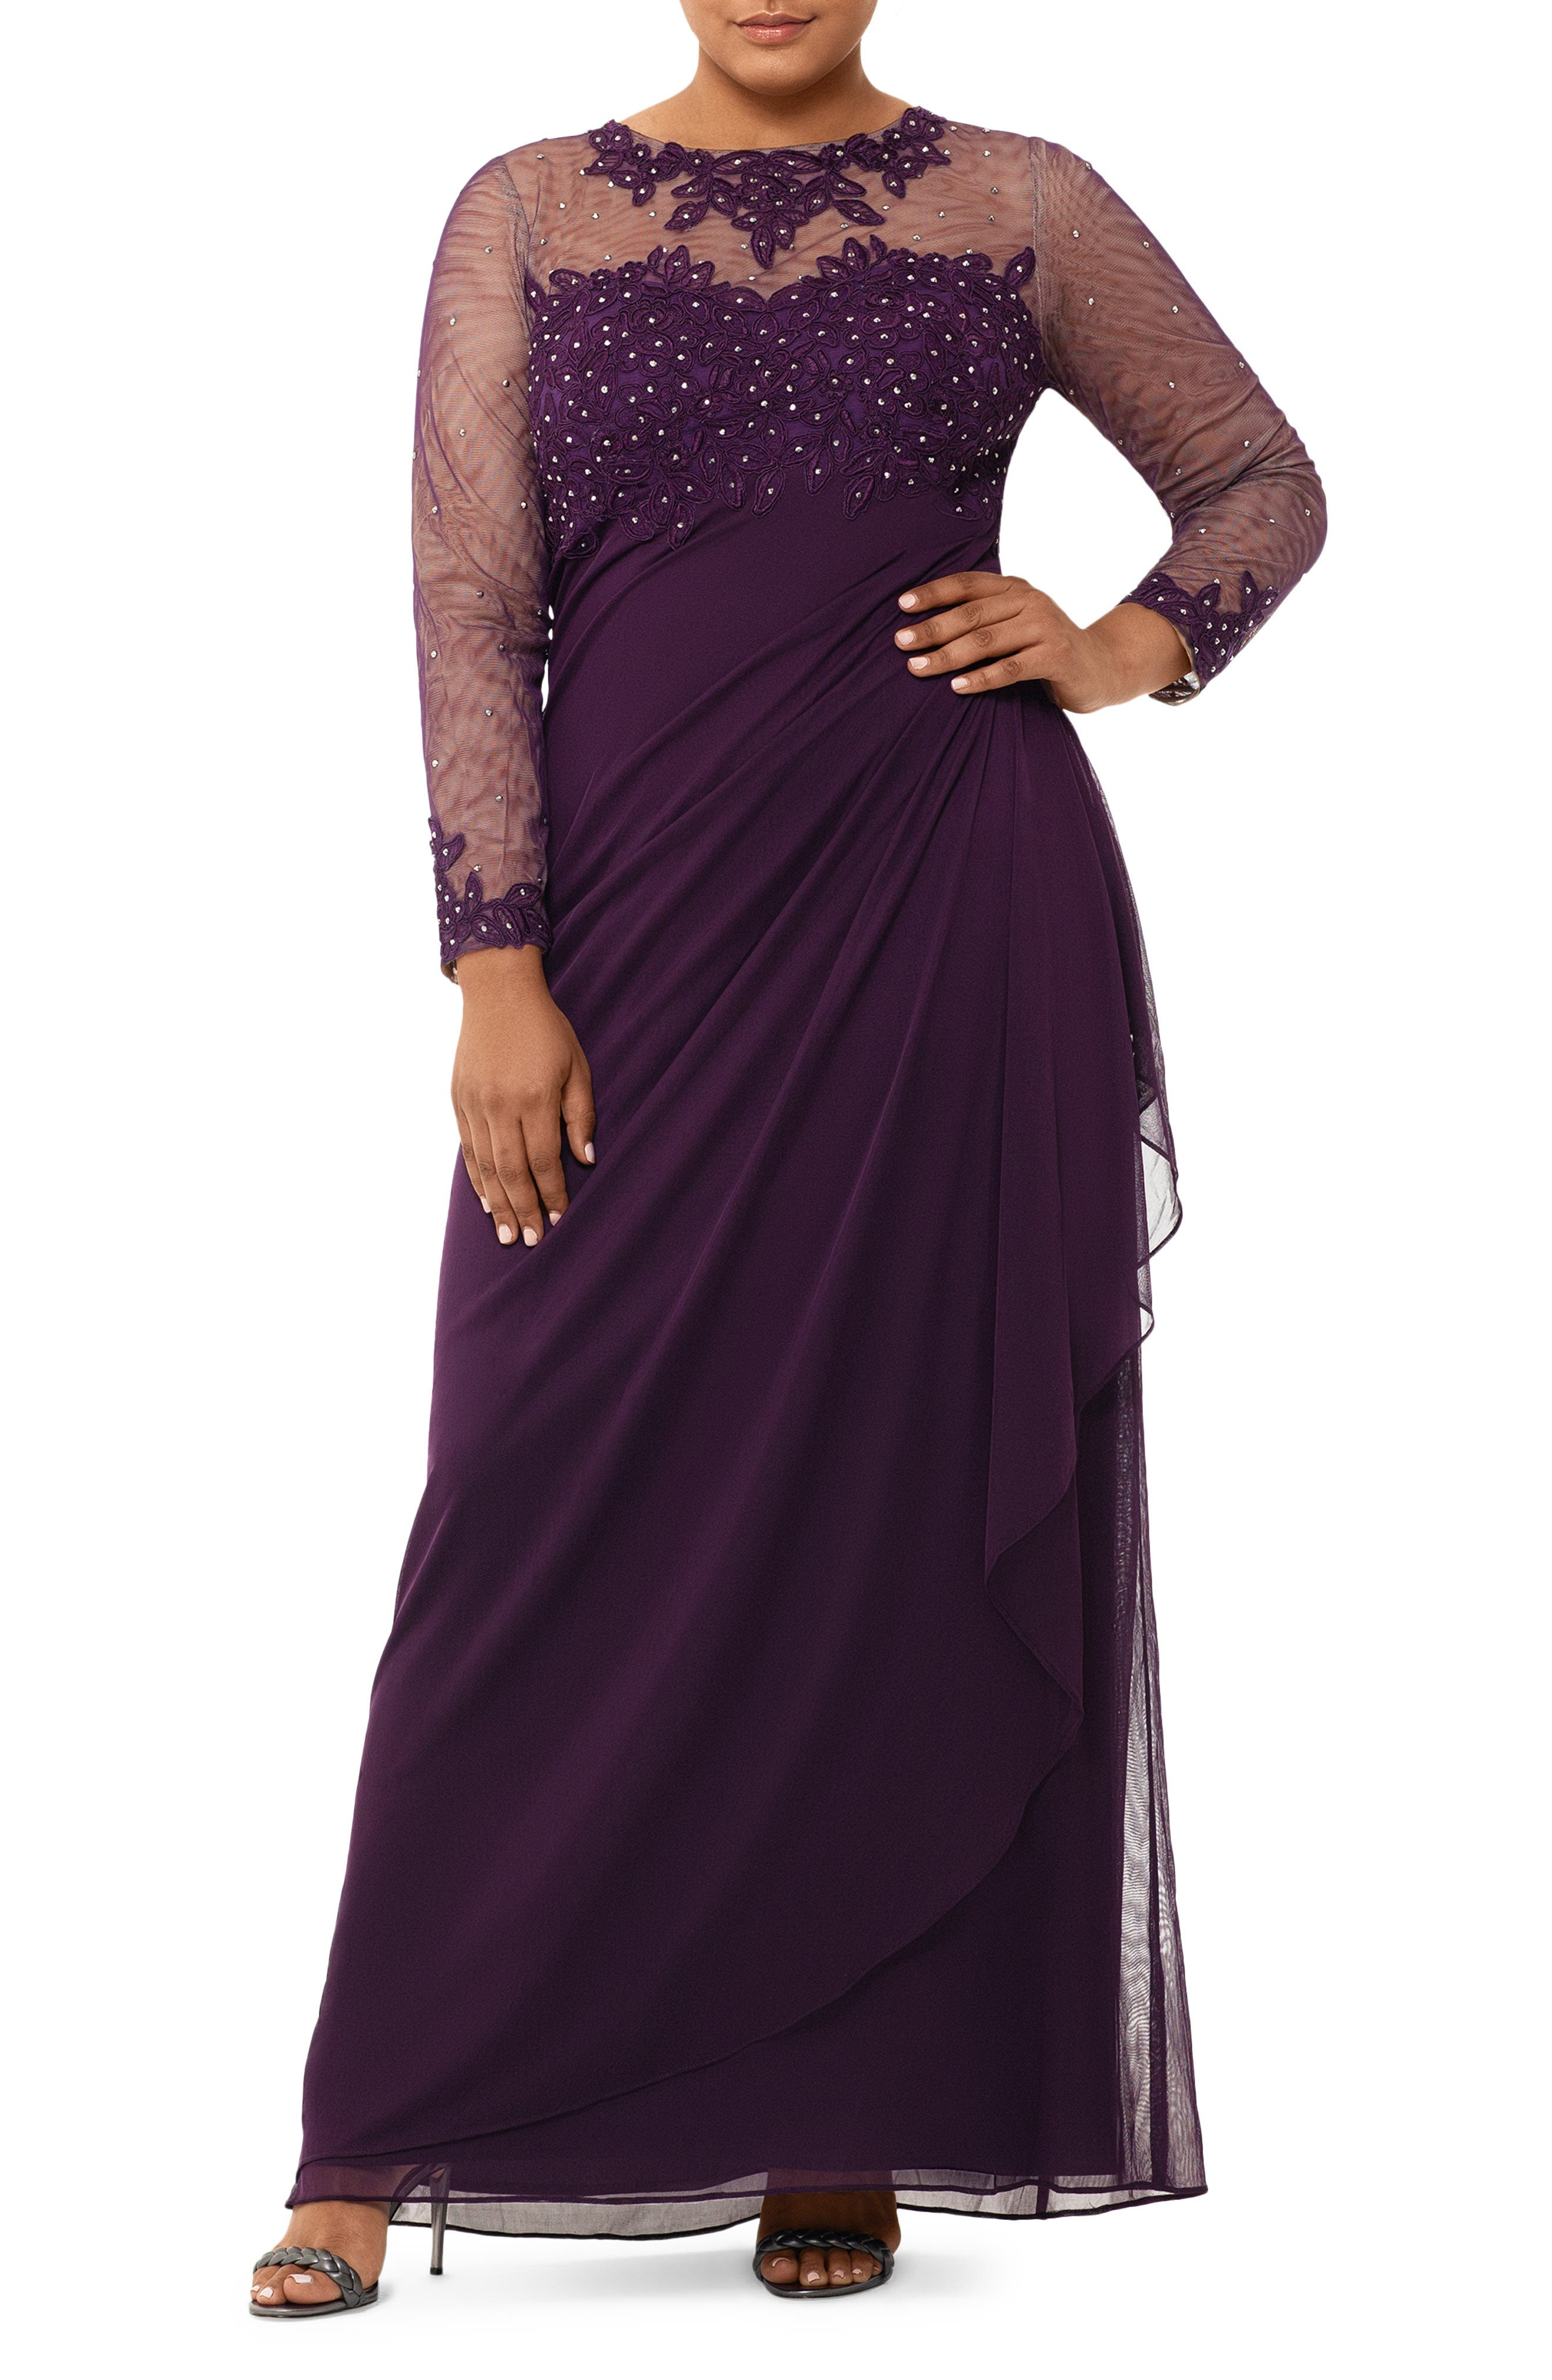 1940s Evening, Prom, Party, Formal, Ball Gowns Plus Size Womens Xscape Embellished Illusion Long Sleeve Ruched Gown $268.00 AT vintagedancer.com